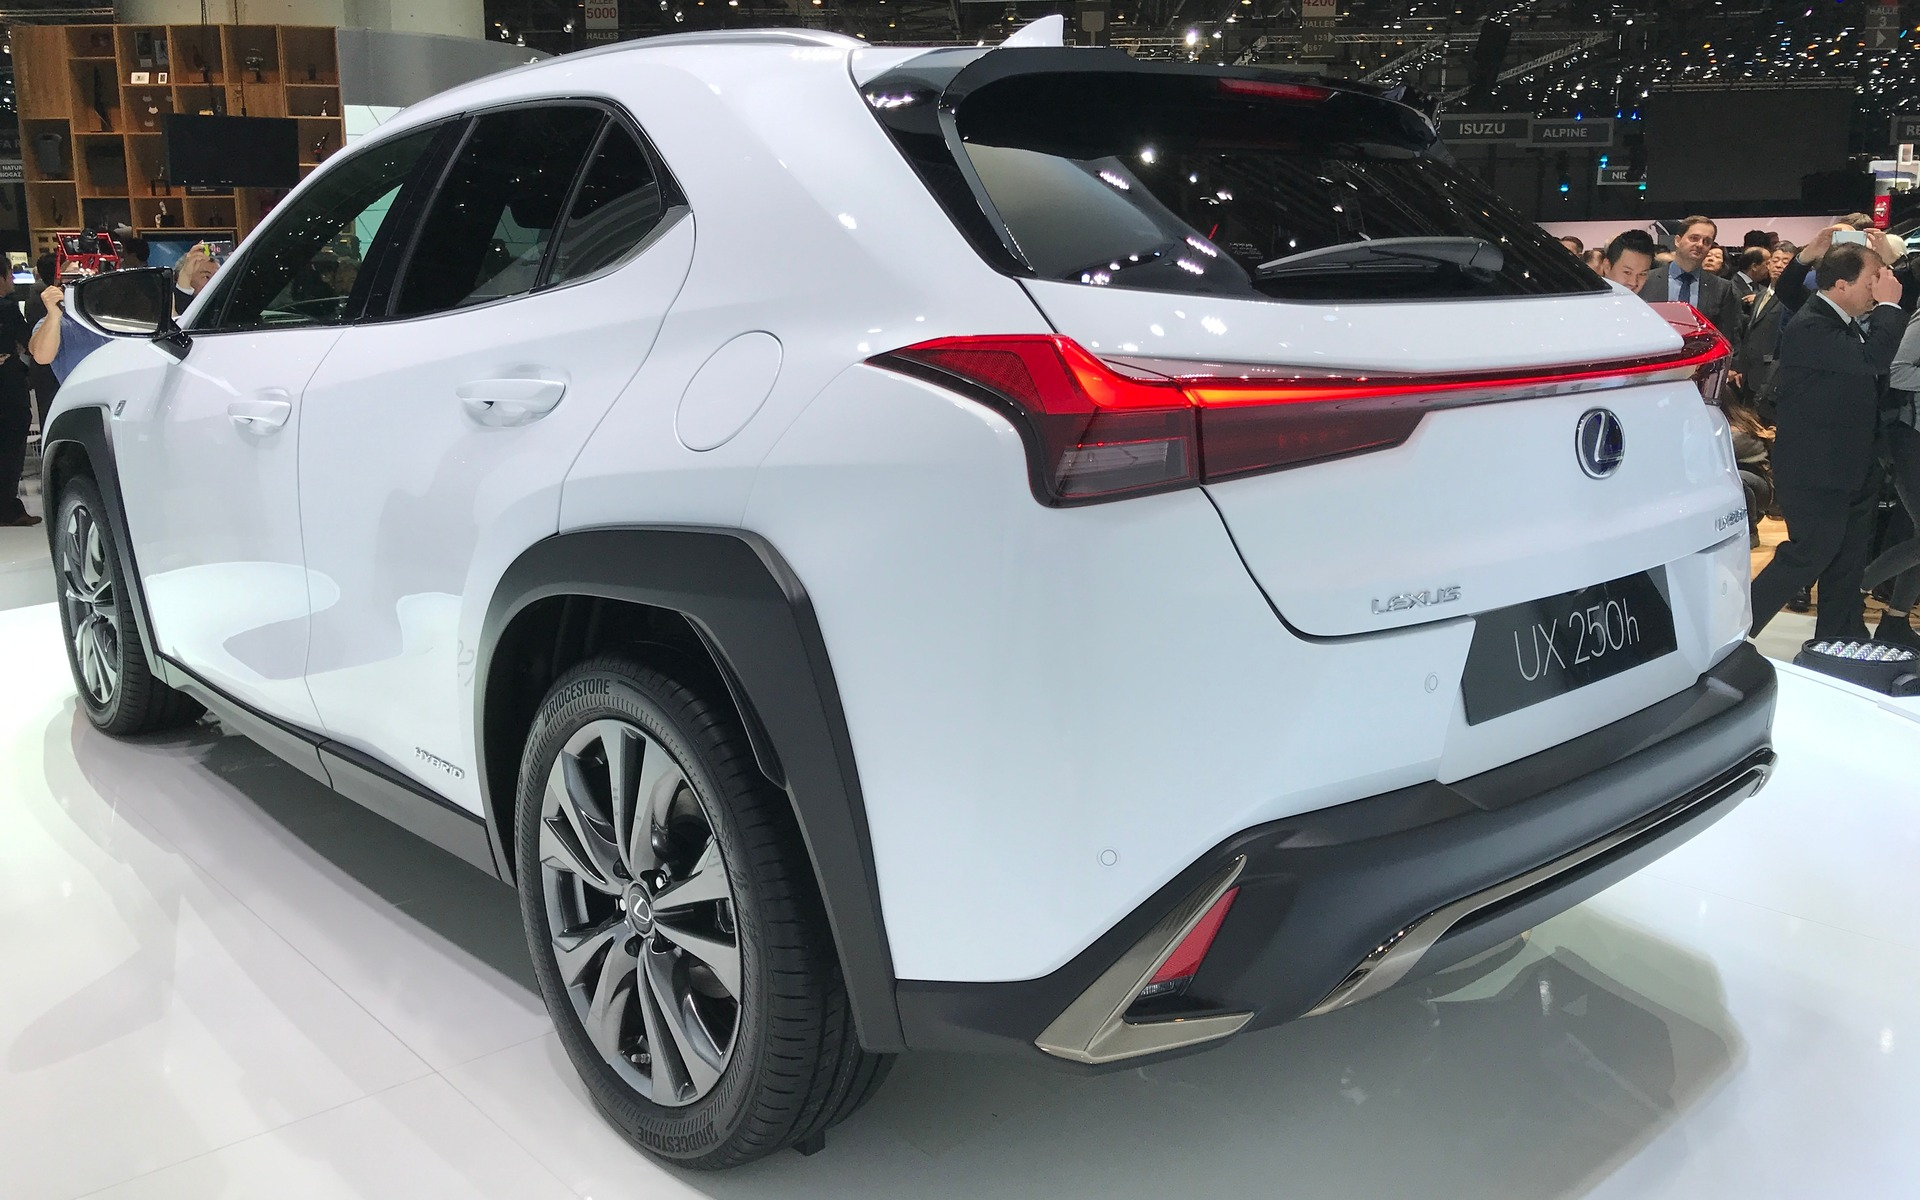 New Lexus Suv >> 2019 Lexus UX: the Brand's New Entry-level SUV is Coming! - 3/21